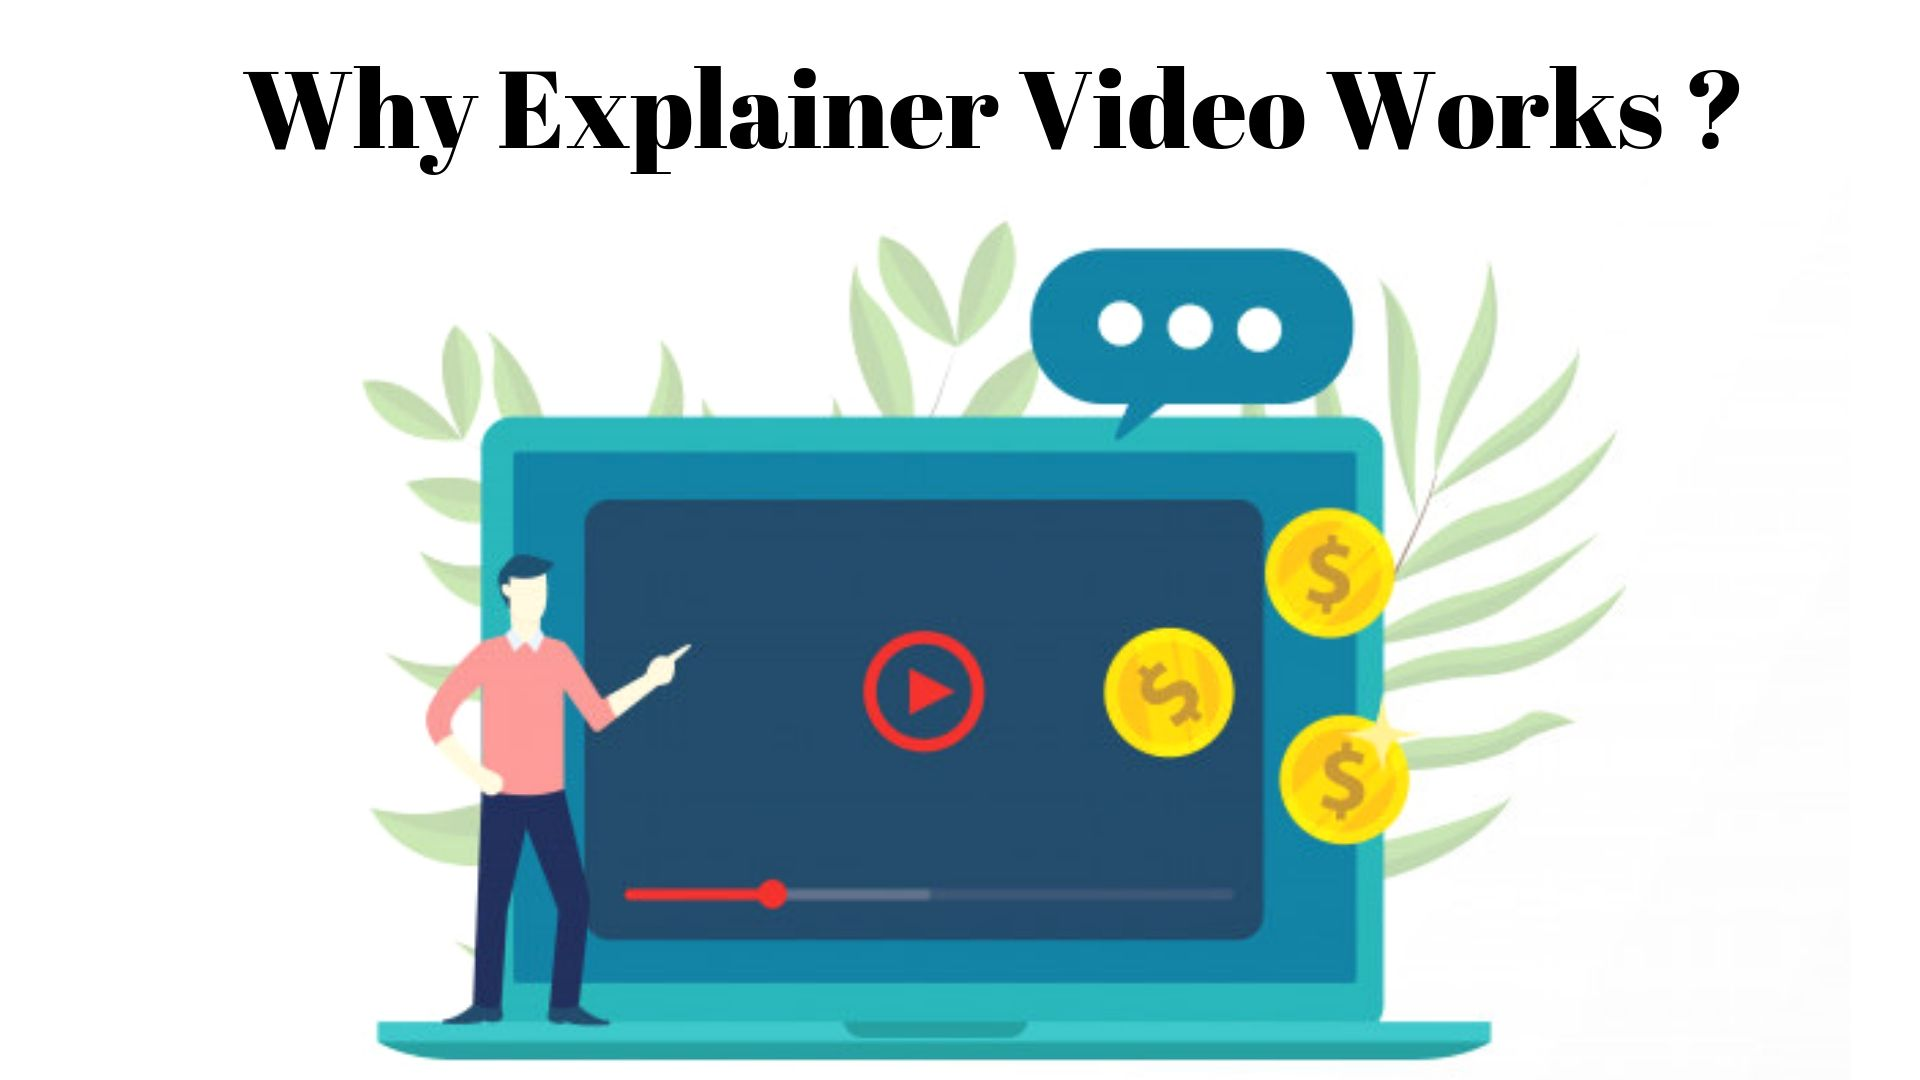 Why Explainer Video Works